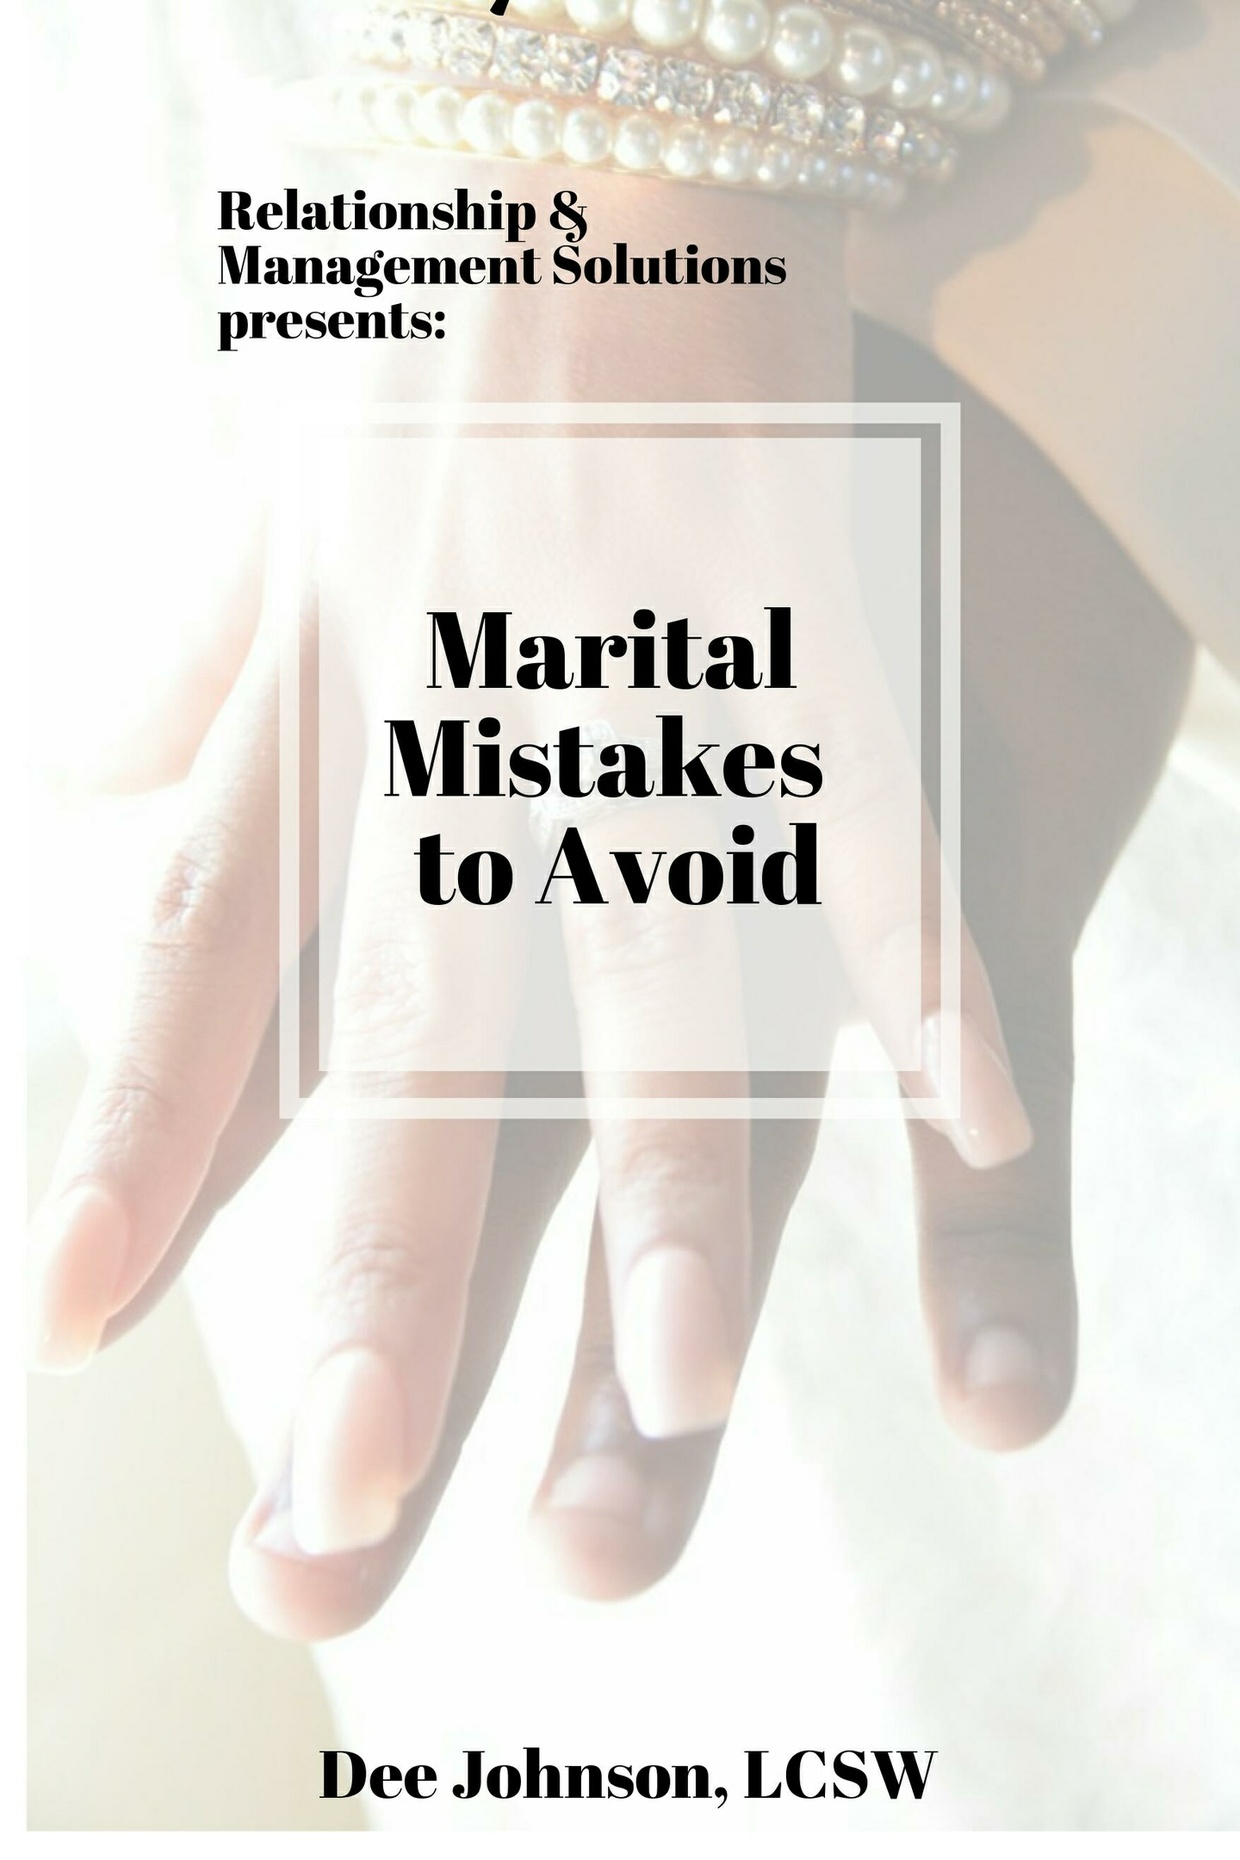 Marital Mistakes to Avoid